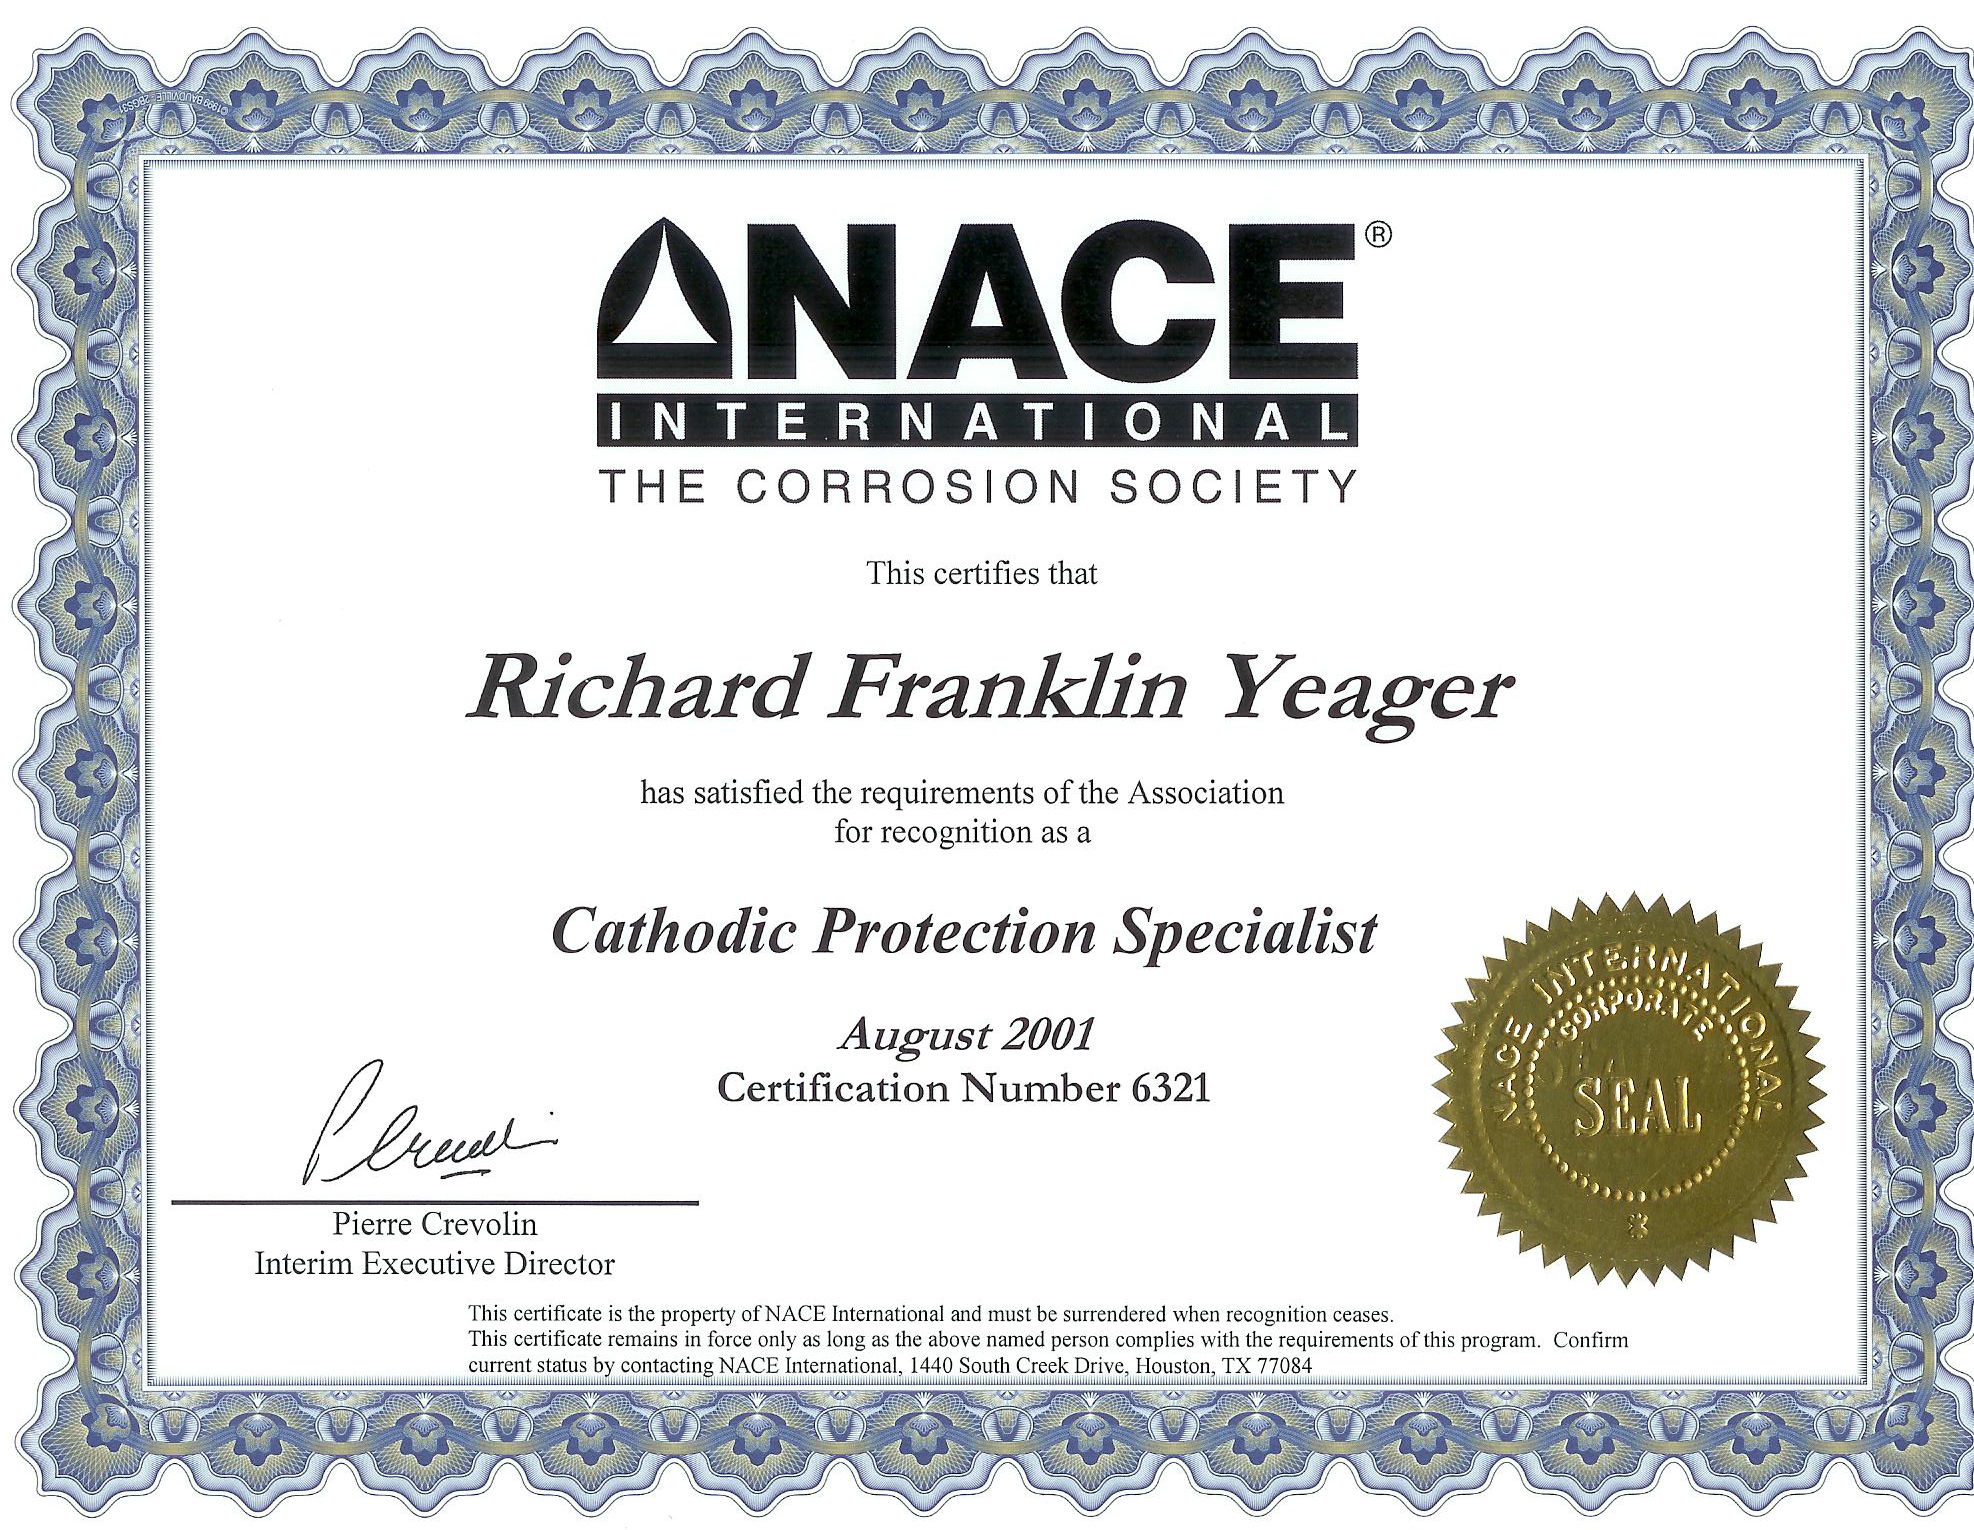 RFYeager NACE_Certification